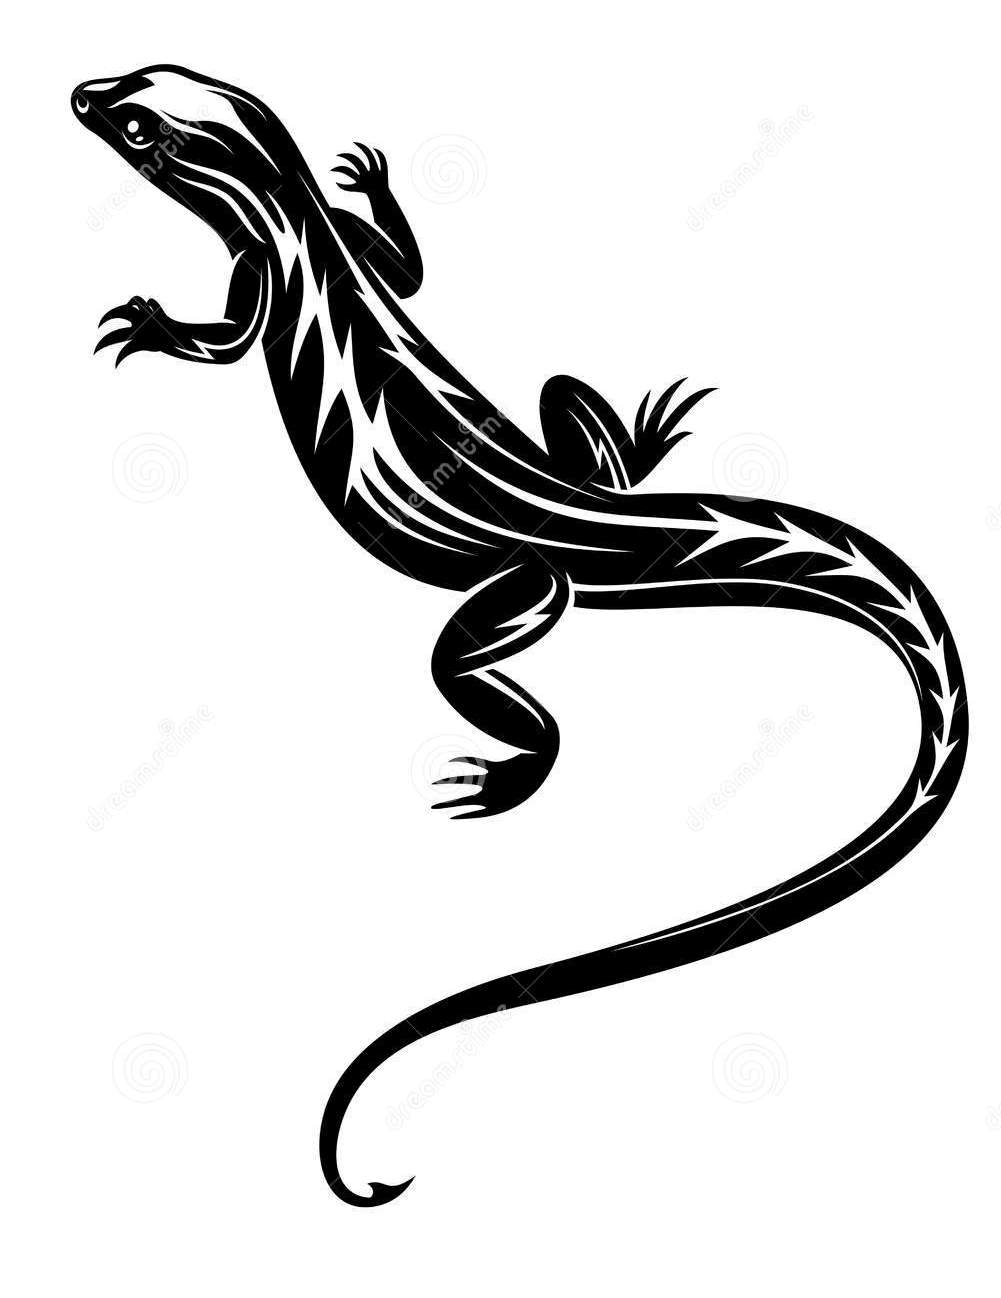 http://www.dreamstime.com/royalty-free-stock-photography-black-lizard-reptile-image26122997